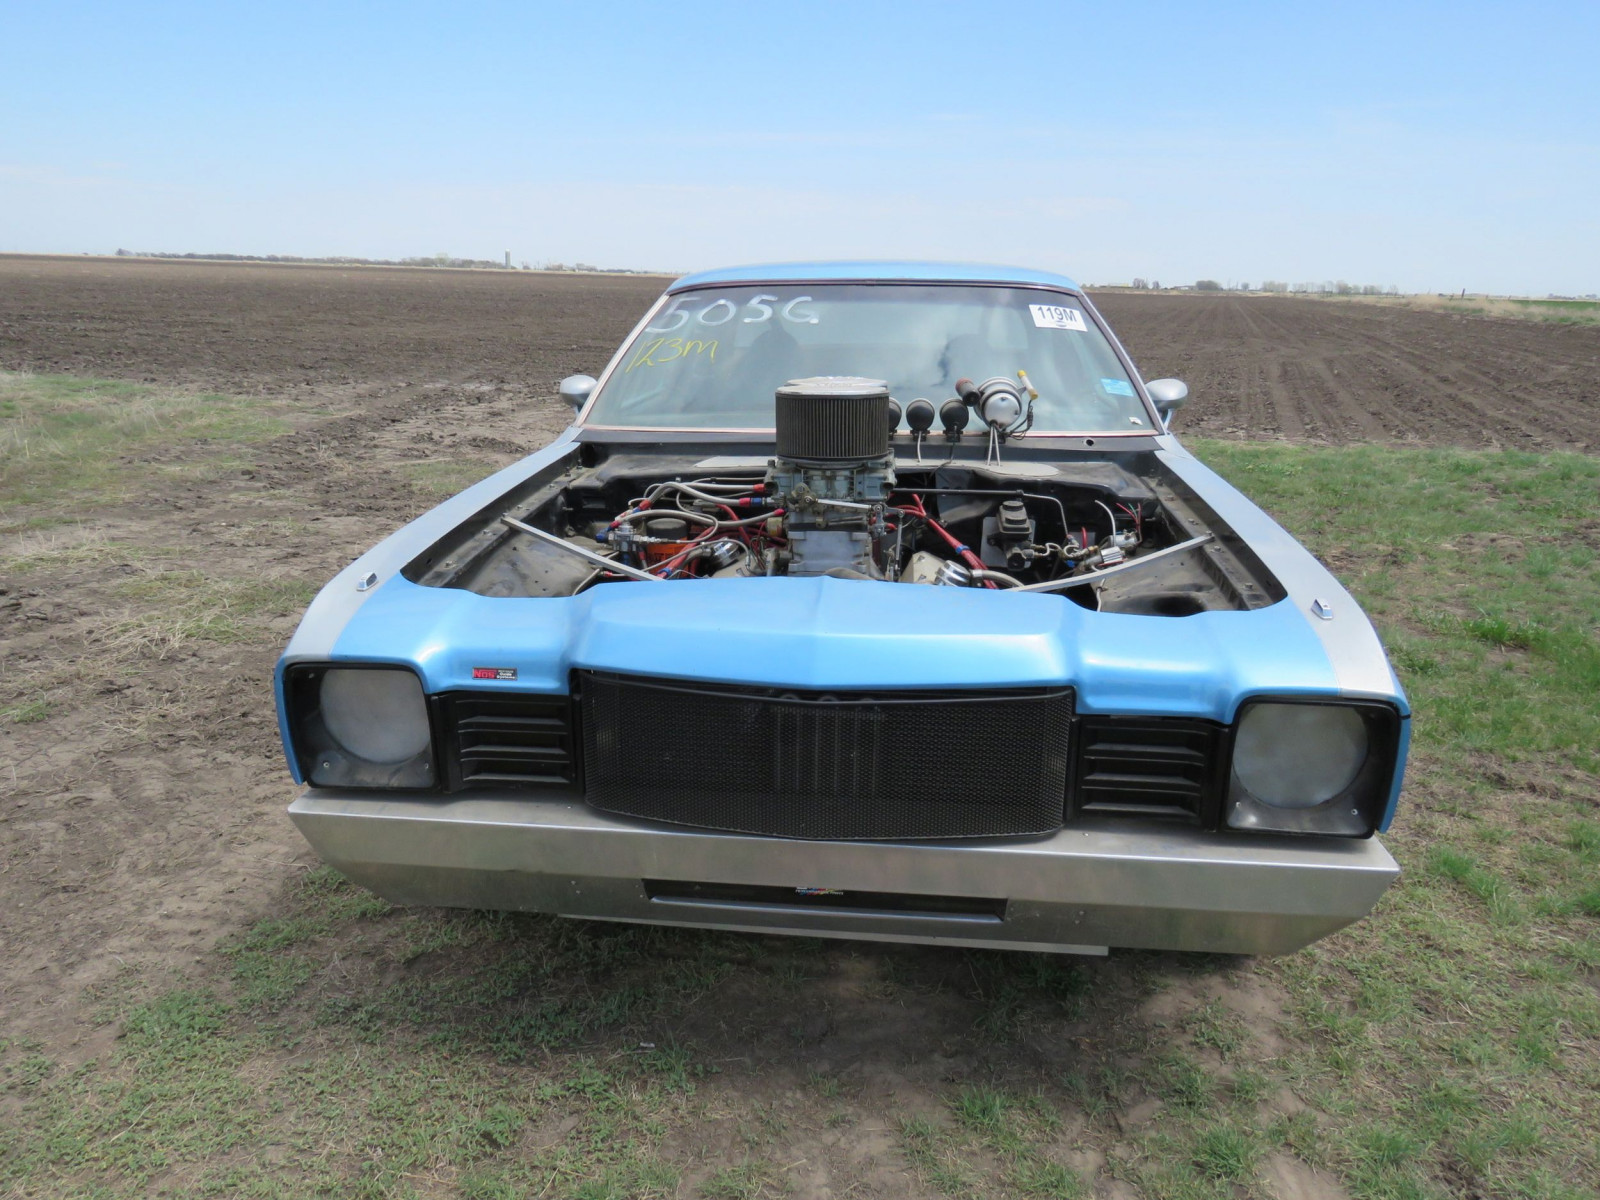 1979 Dodge Aspen Drag Car - Image 2